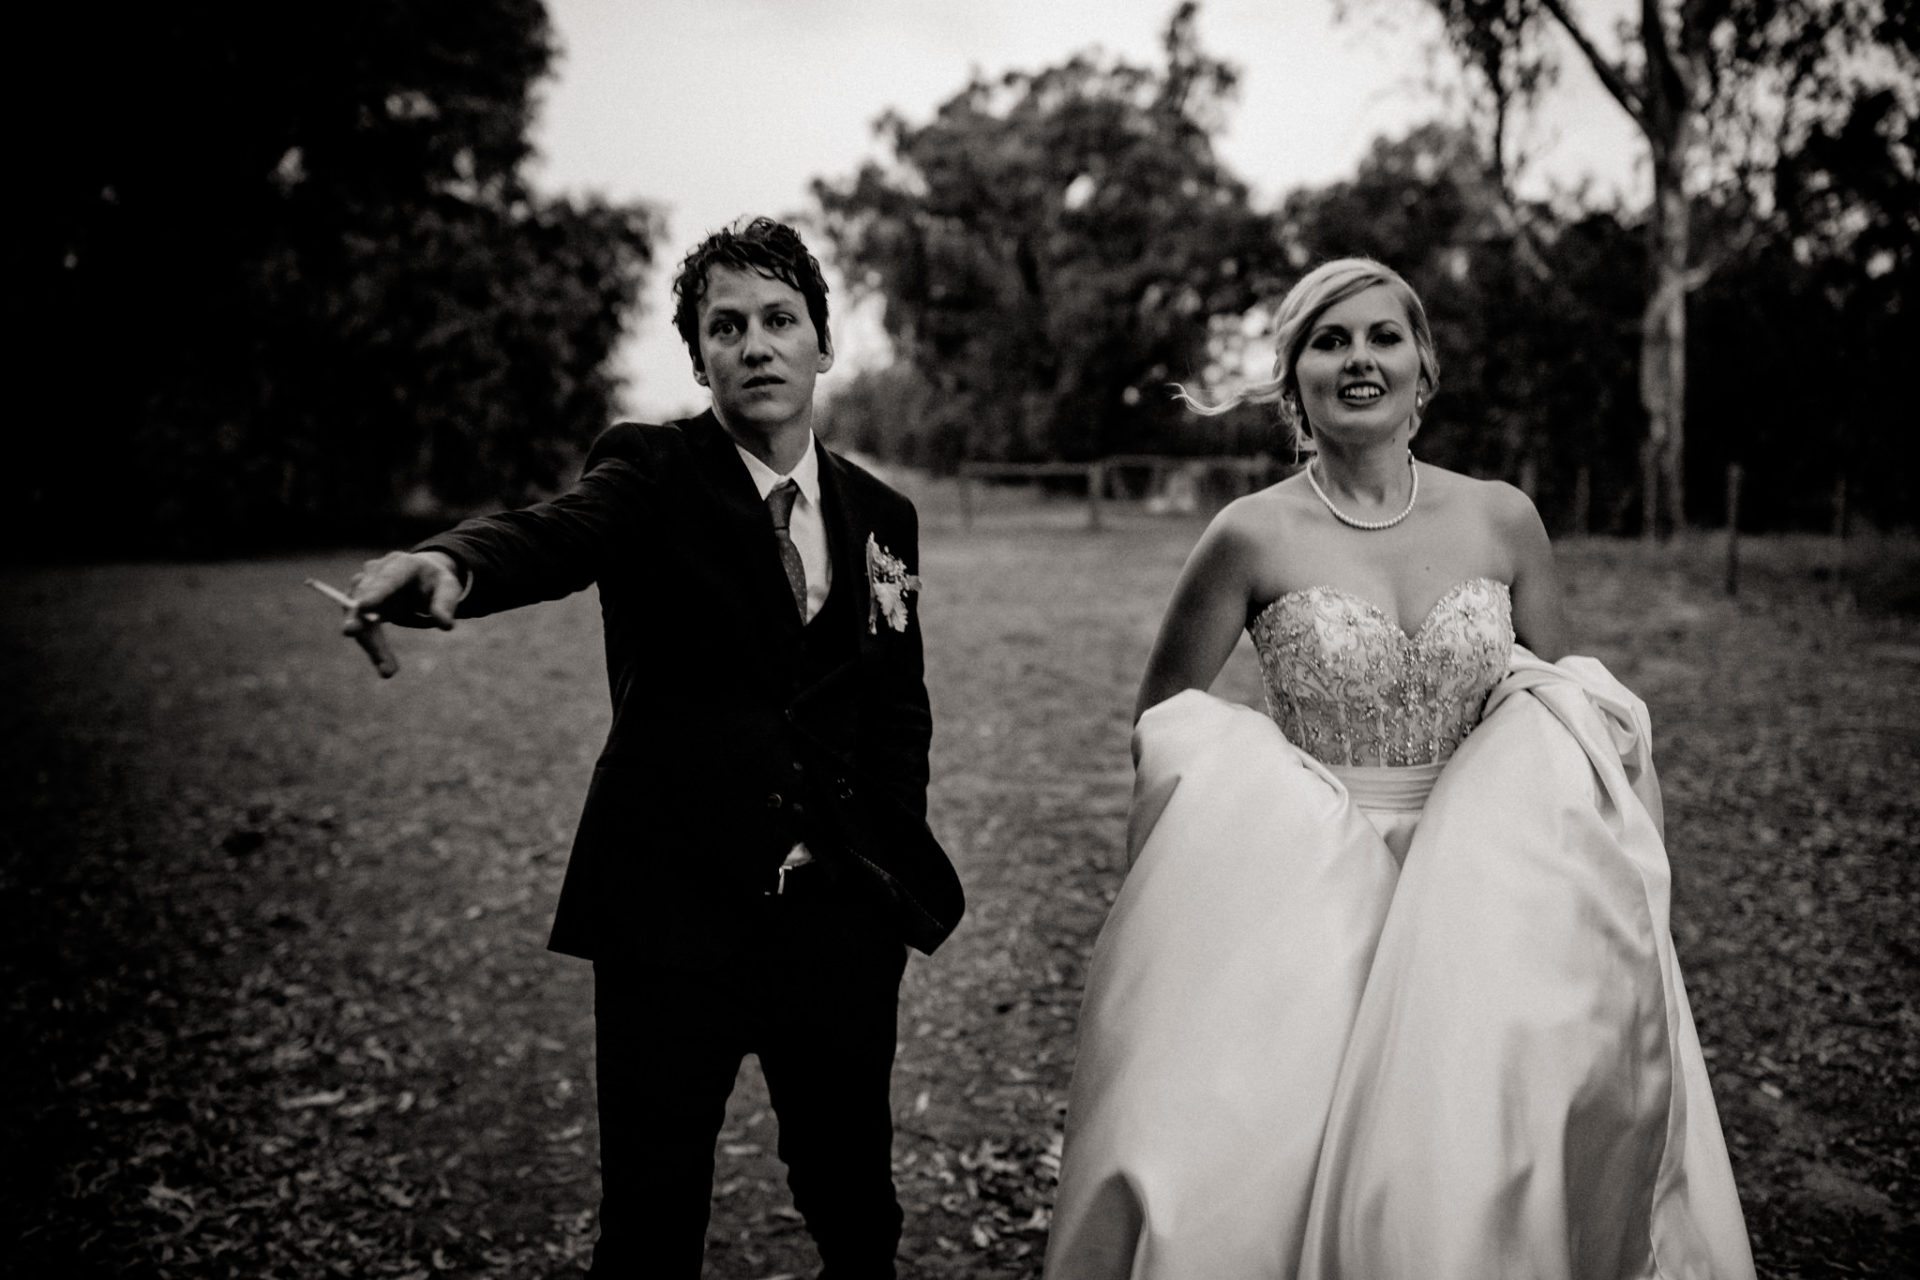 backyard-wedding-australia-melbourne-bride-groom-walking